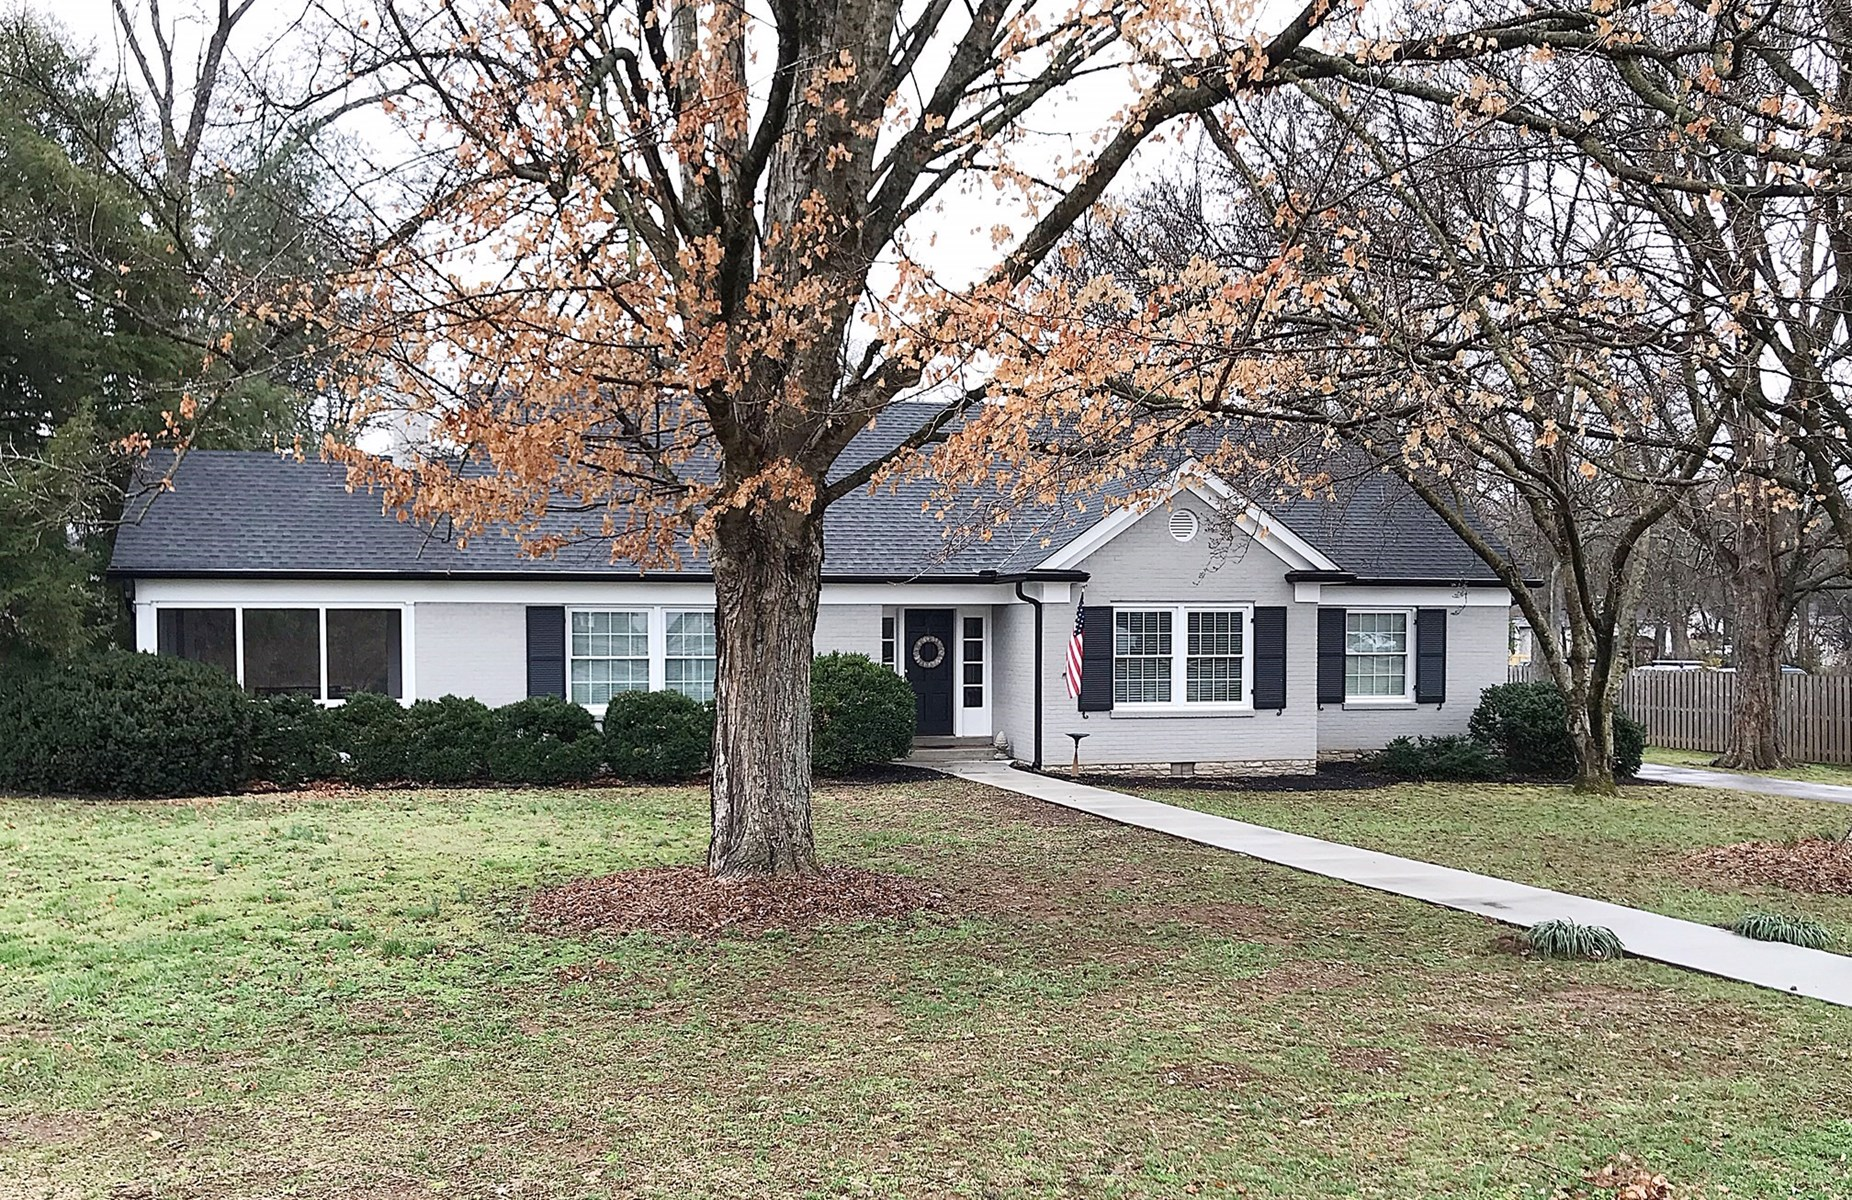 Beautiful Home, Walking Distance to Downtown Franklin, TN